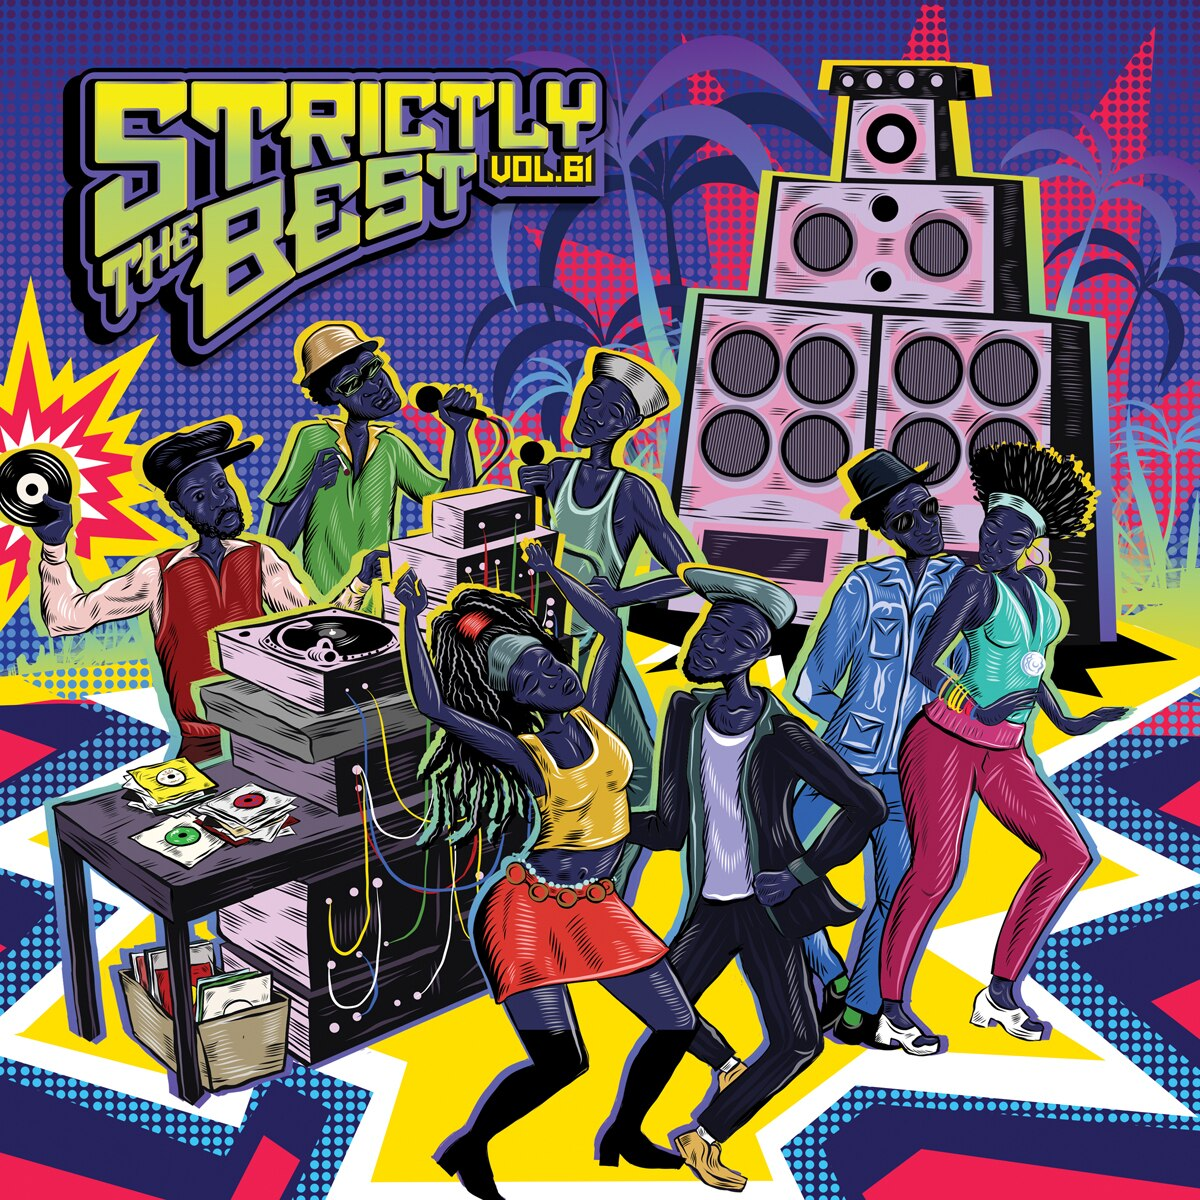 Strictly The Best Vol. 61 (2CD)